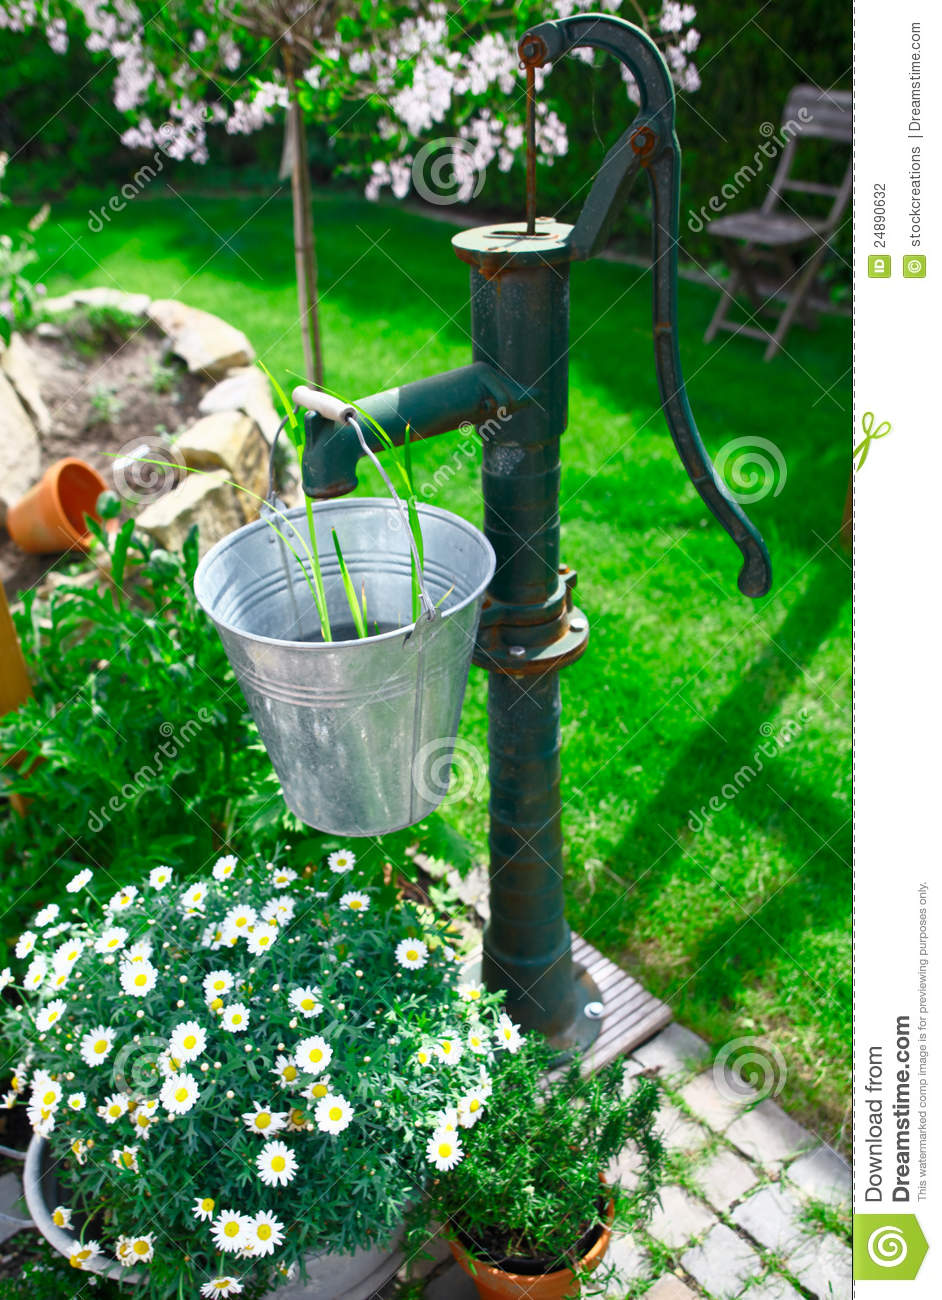 Ornamental Old Cast Iron Water Pump Stock Photo - Image of ...